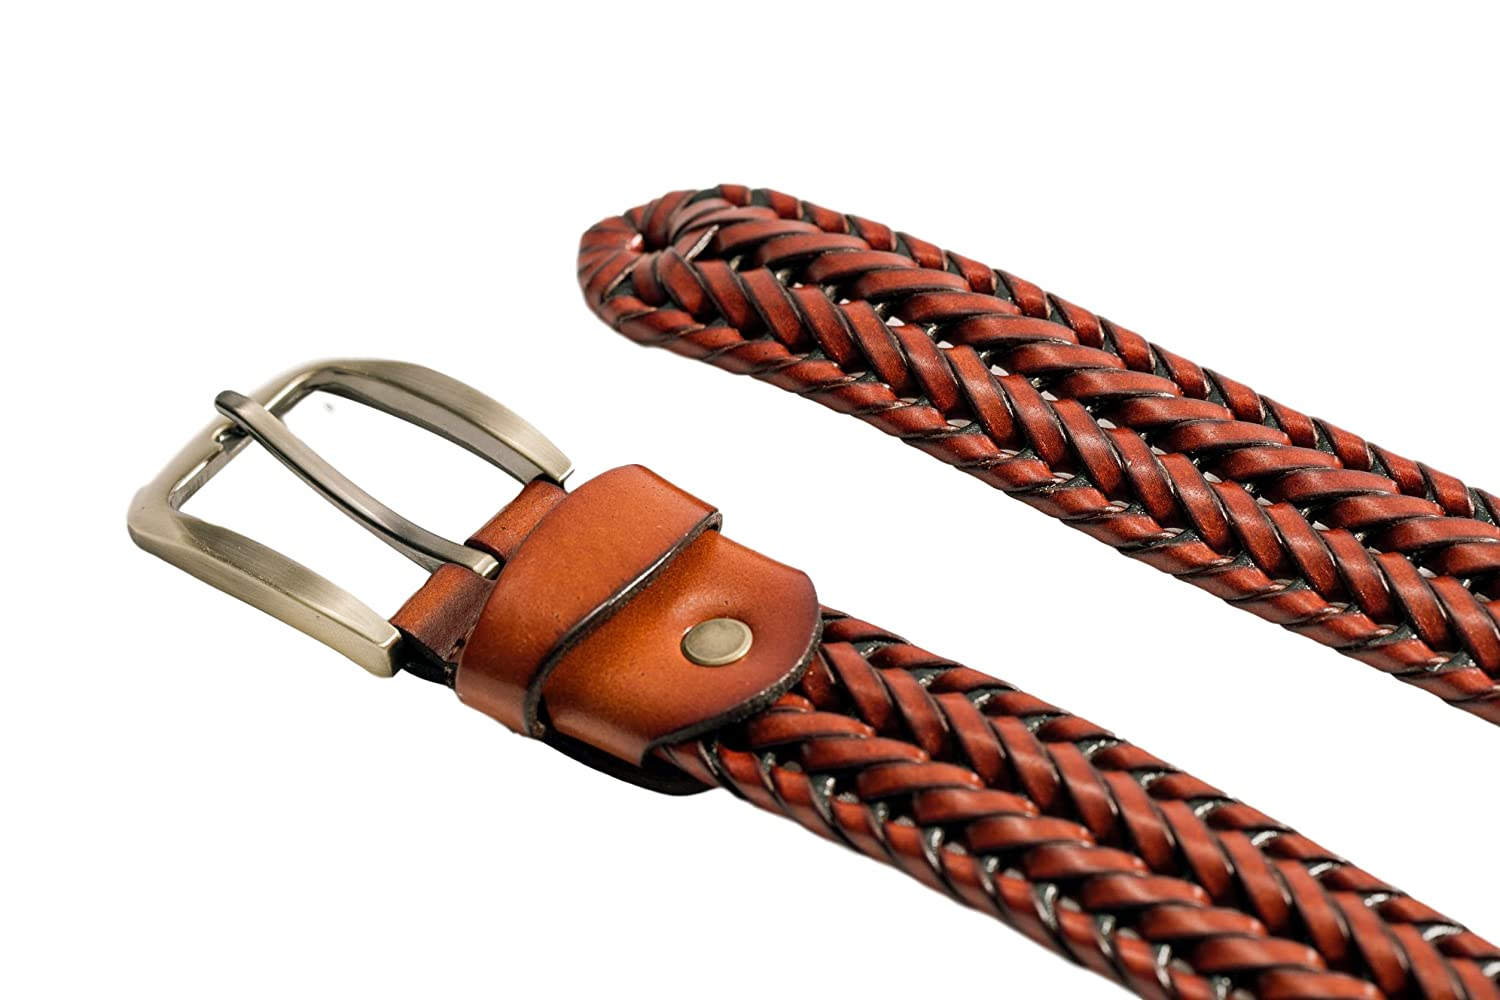 Elemental Belts Brown Leather Braided Belt for Men